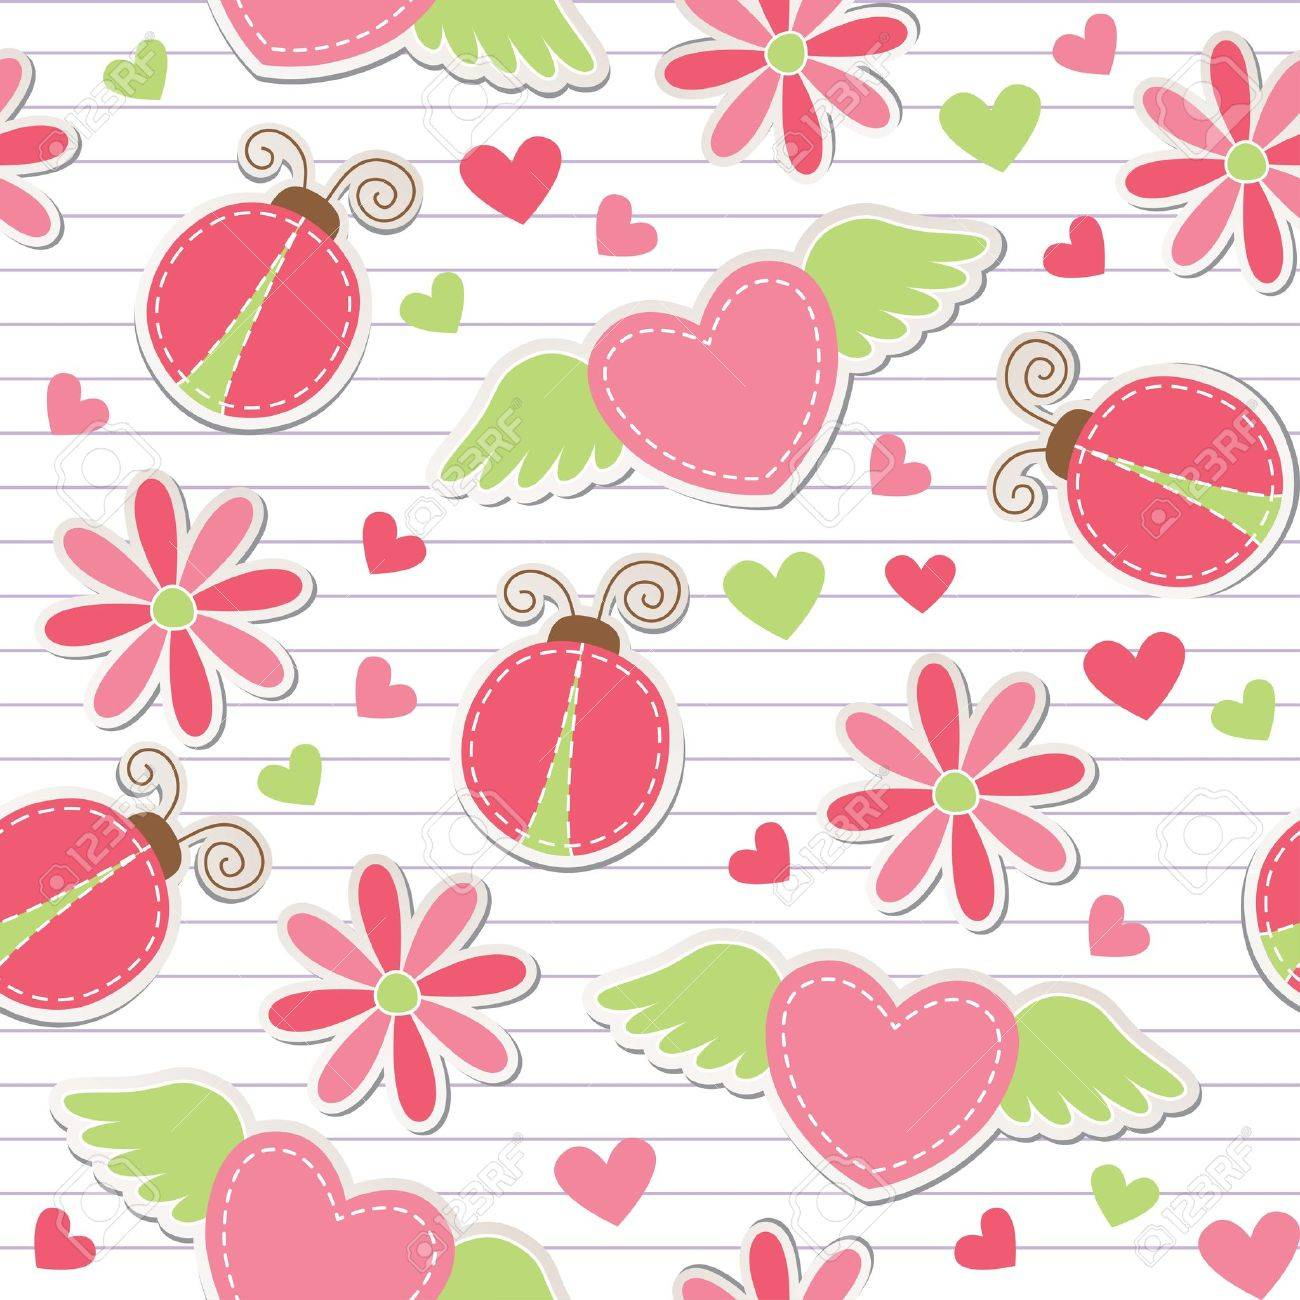 cute romantic seamless pattern with ladybugs, hearts and flowers Stock Vector - 11060638